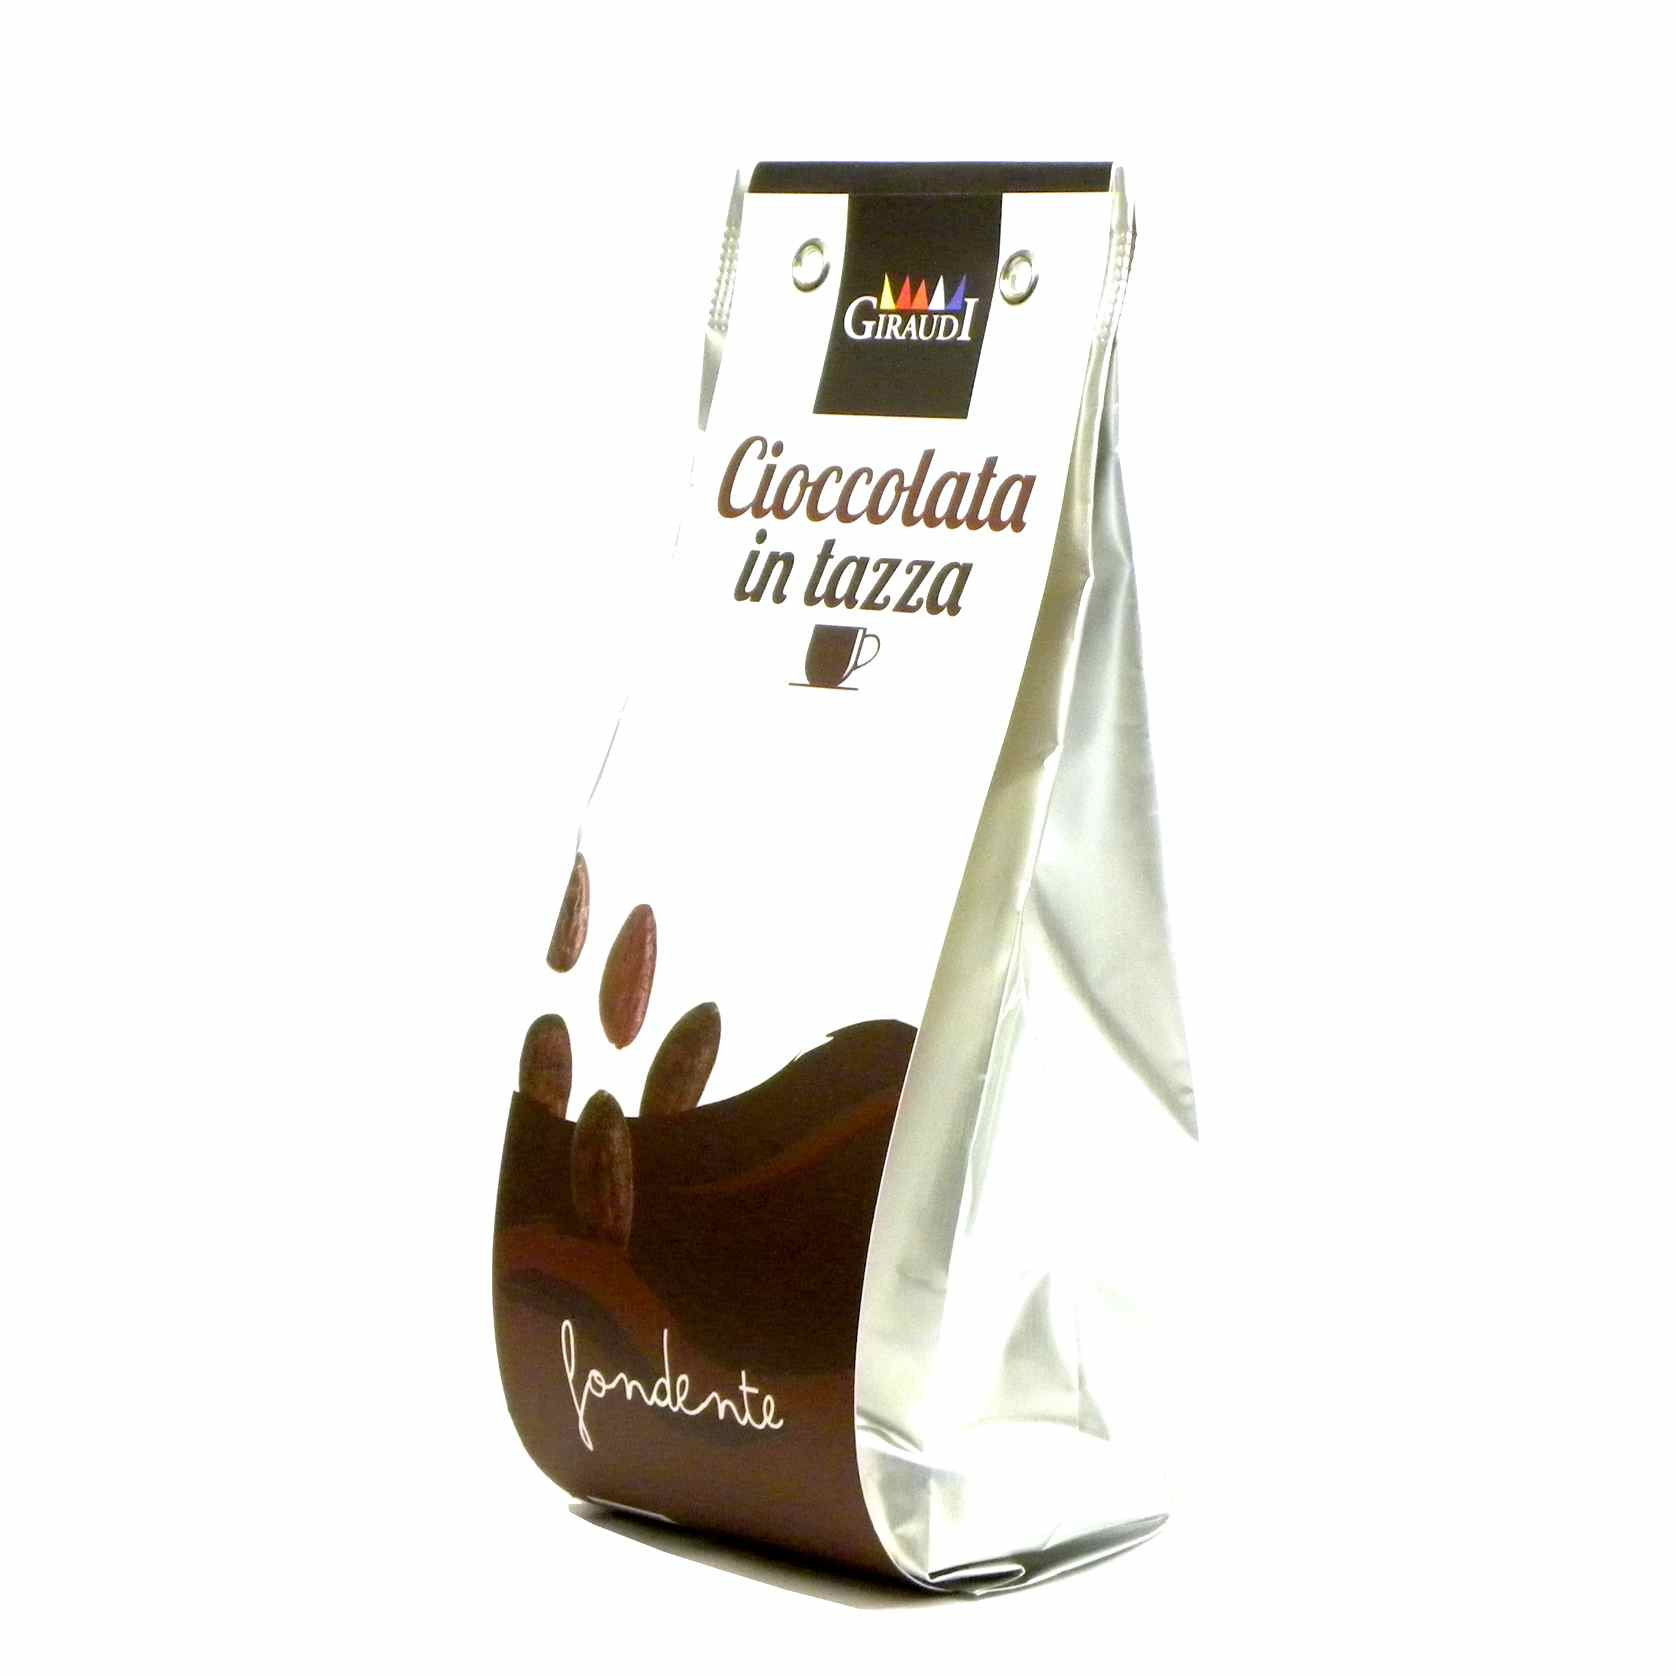 Giraudi cioccolata fondente – Giraudi dark hot chocolate – Gustorotondo – Italian food boutique